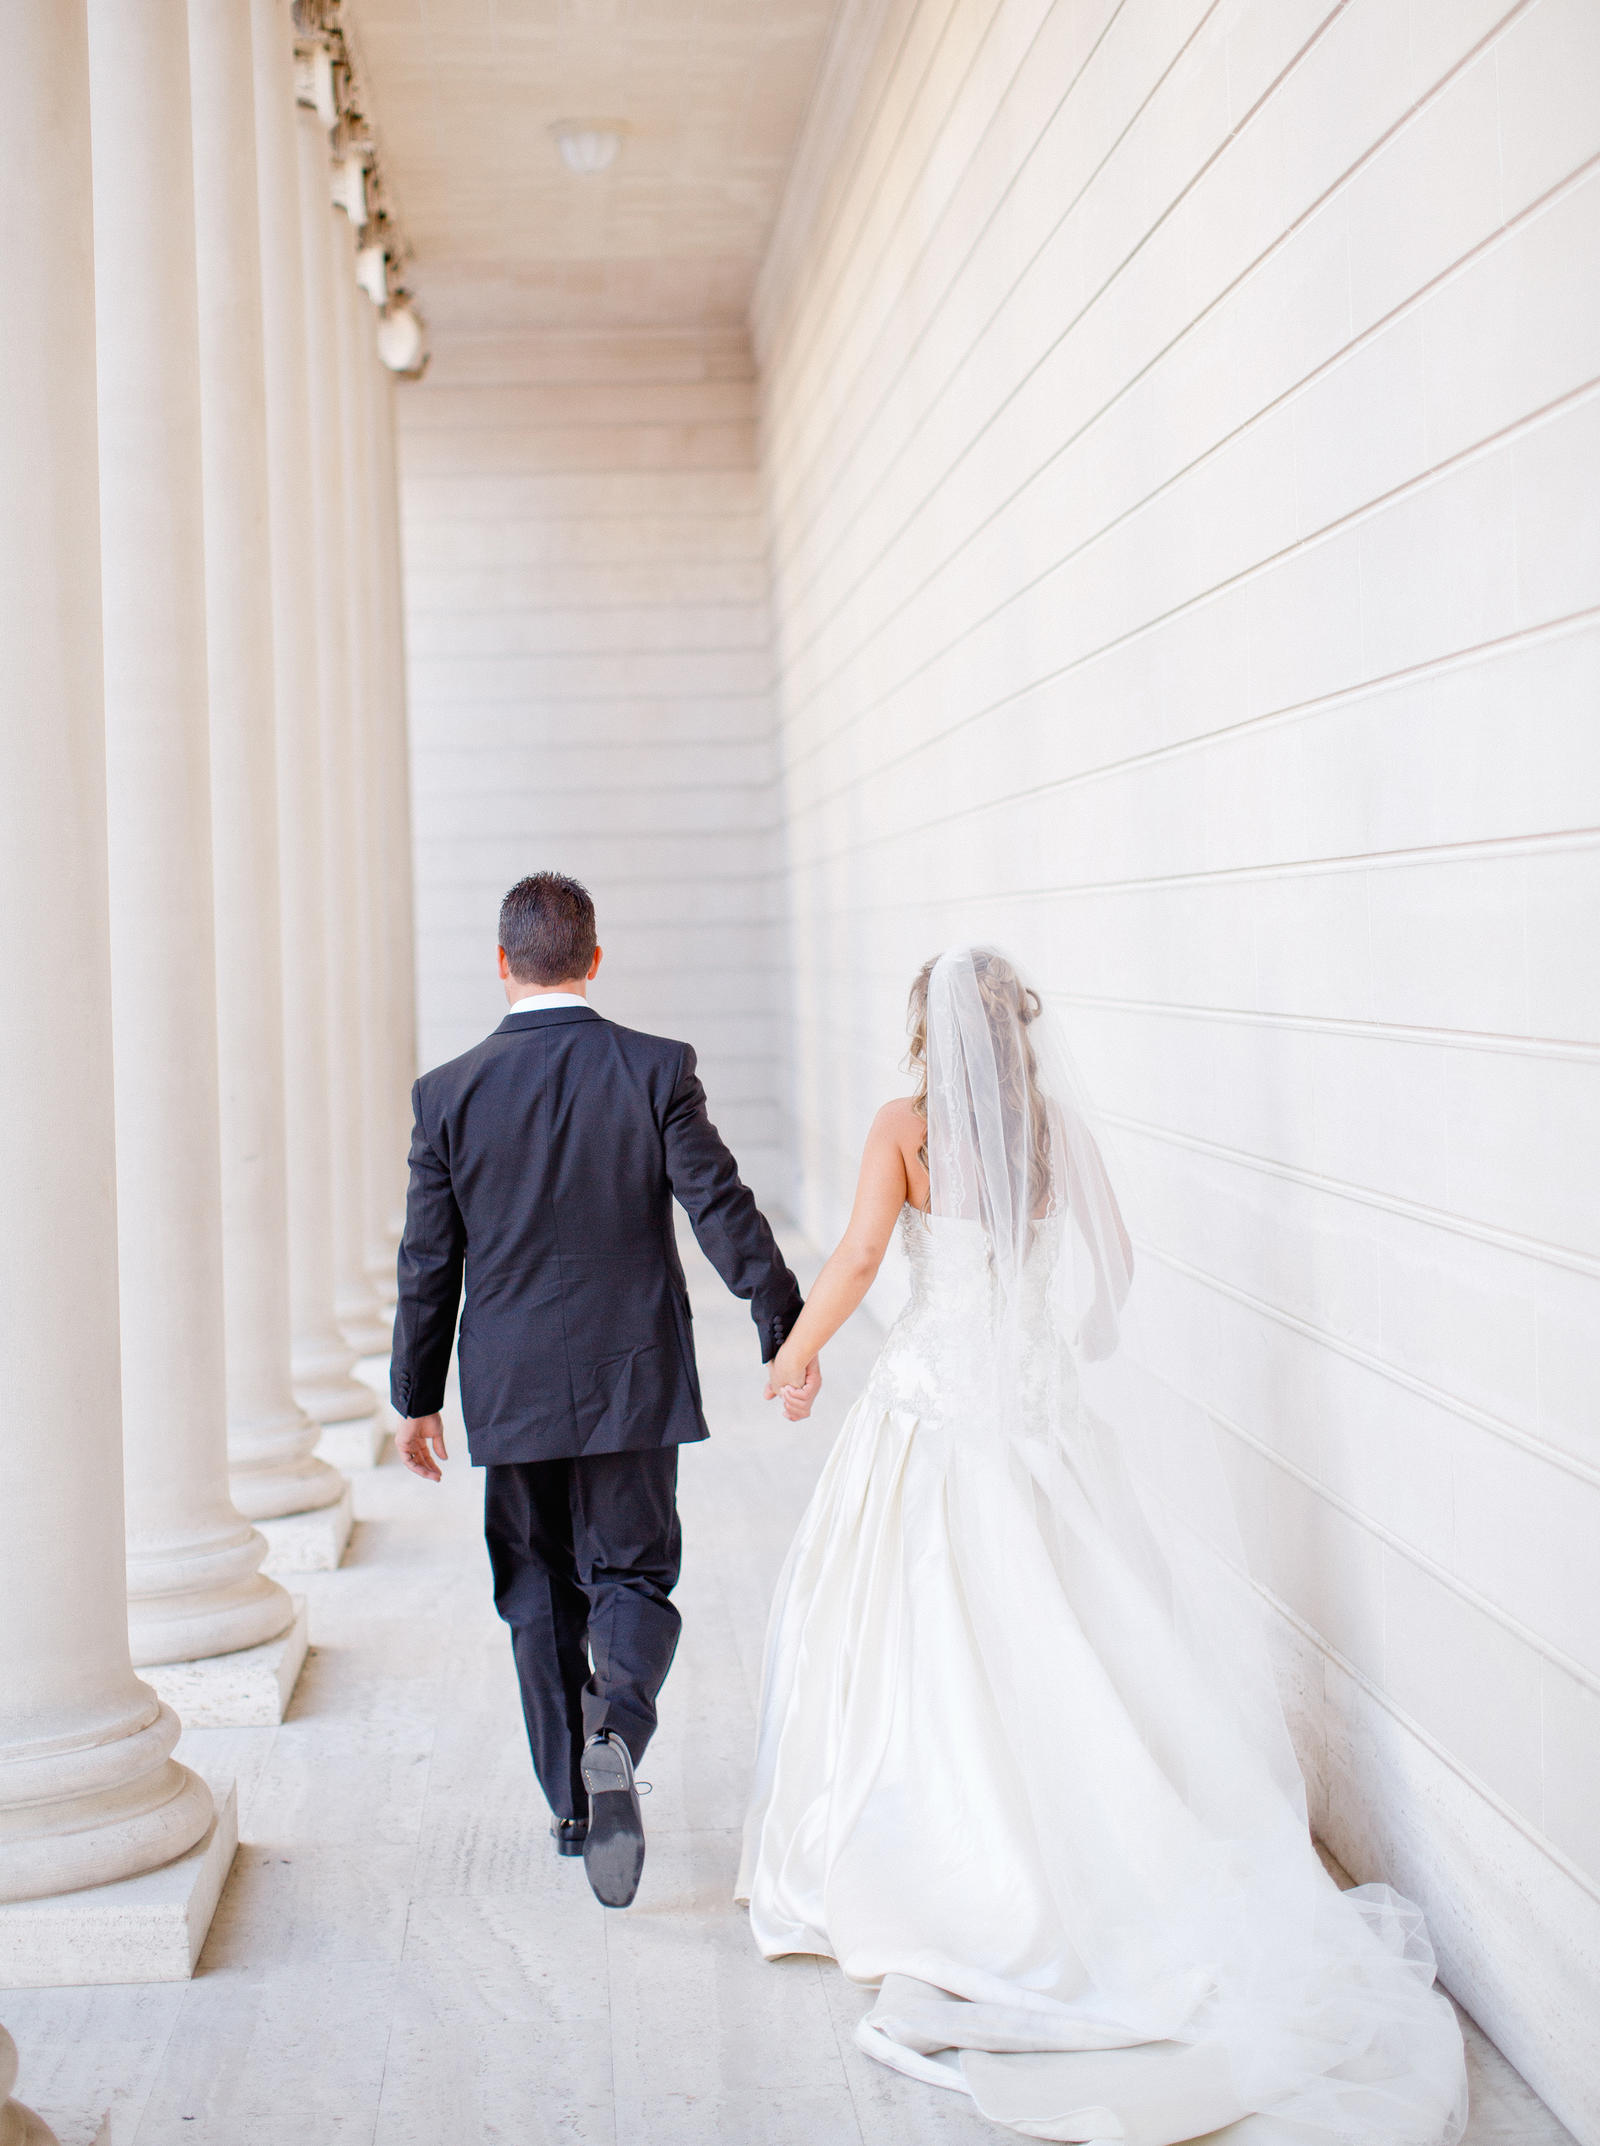 Wedding Photography | A bride and groom walk hand-in-hand down a walkway.